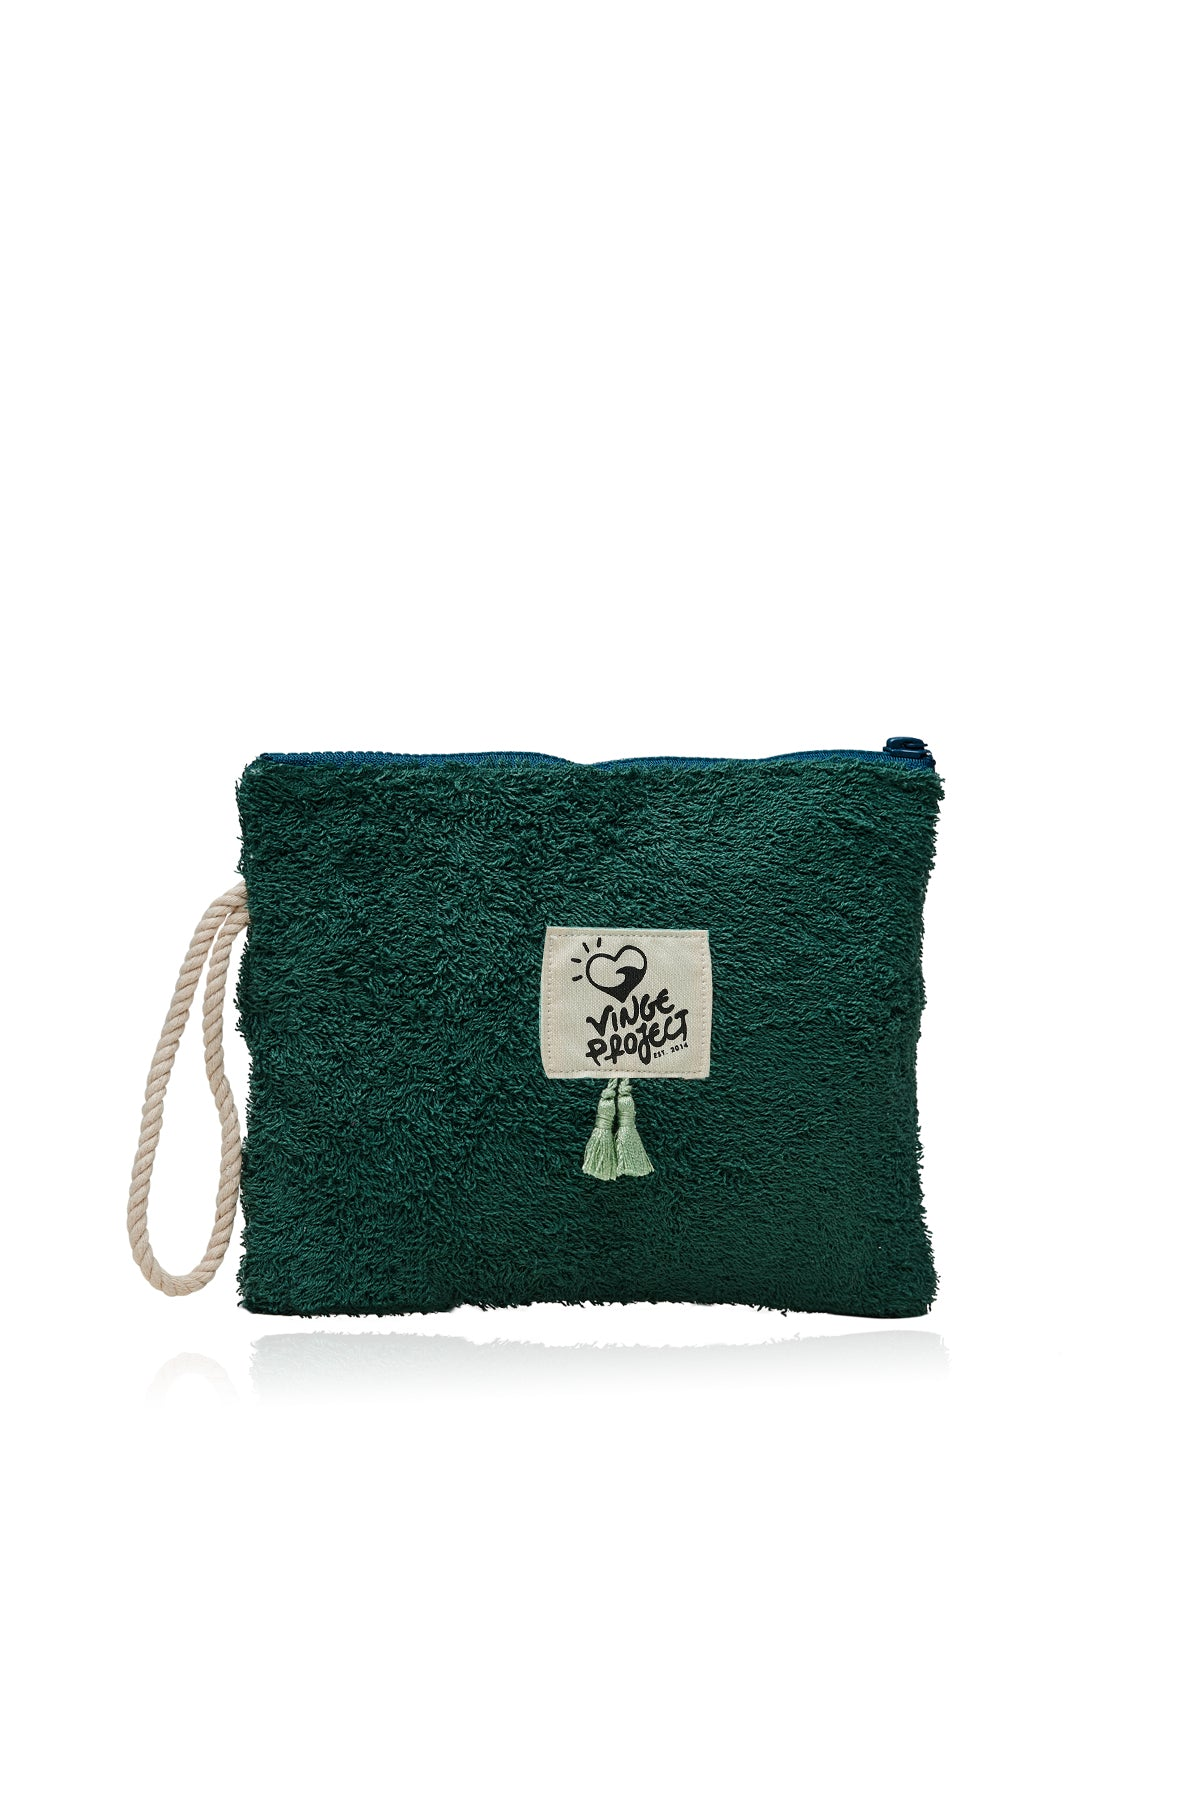 Emerald 𝐒𝐦𝐚𝐥𝐥 Waterproof Clutch Bag